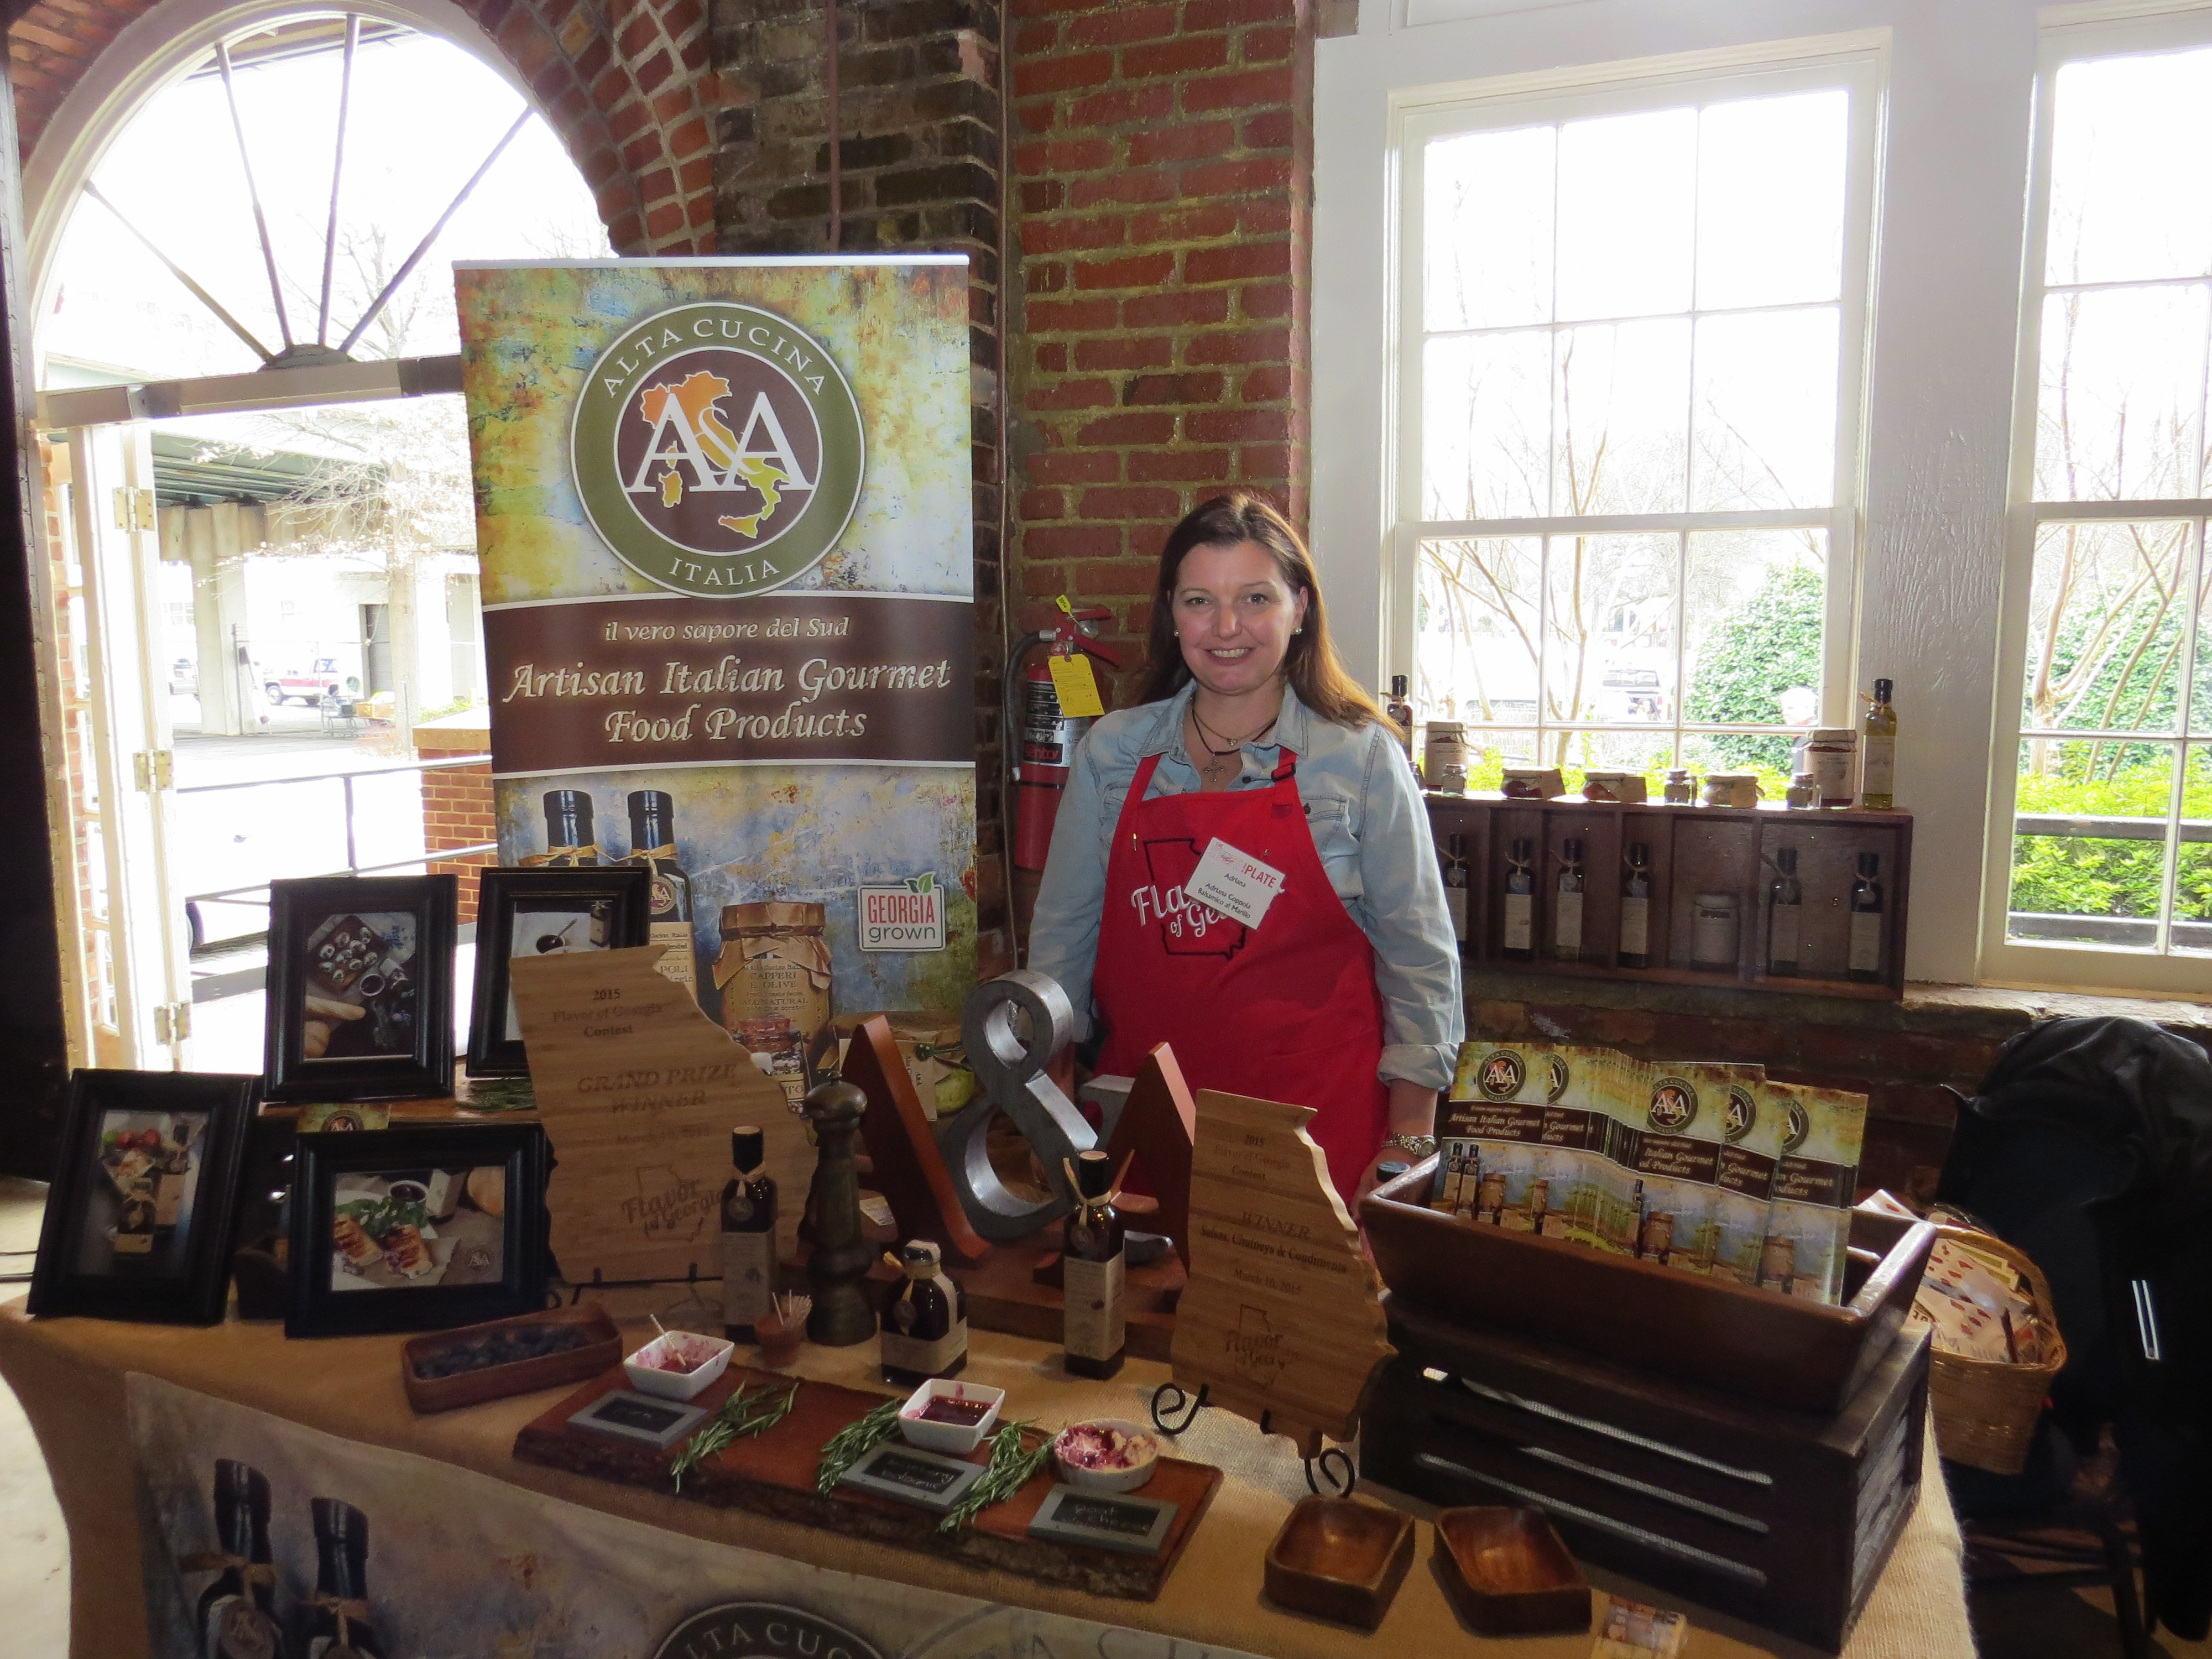 Adriana Coppola, a native Italian now living in Johns Creek, won the grand prize in the University of Georgia's 2015 Flavor of Georgia Food Product Contest with her A&A Alta Cucina Italia Balsamico al Mirtillo, a blueberry balsamic vinegar reduction.